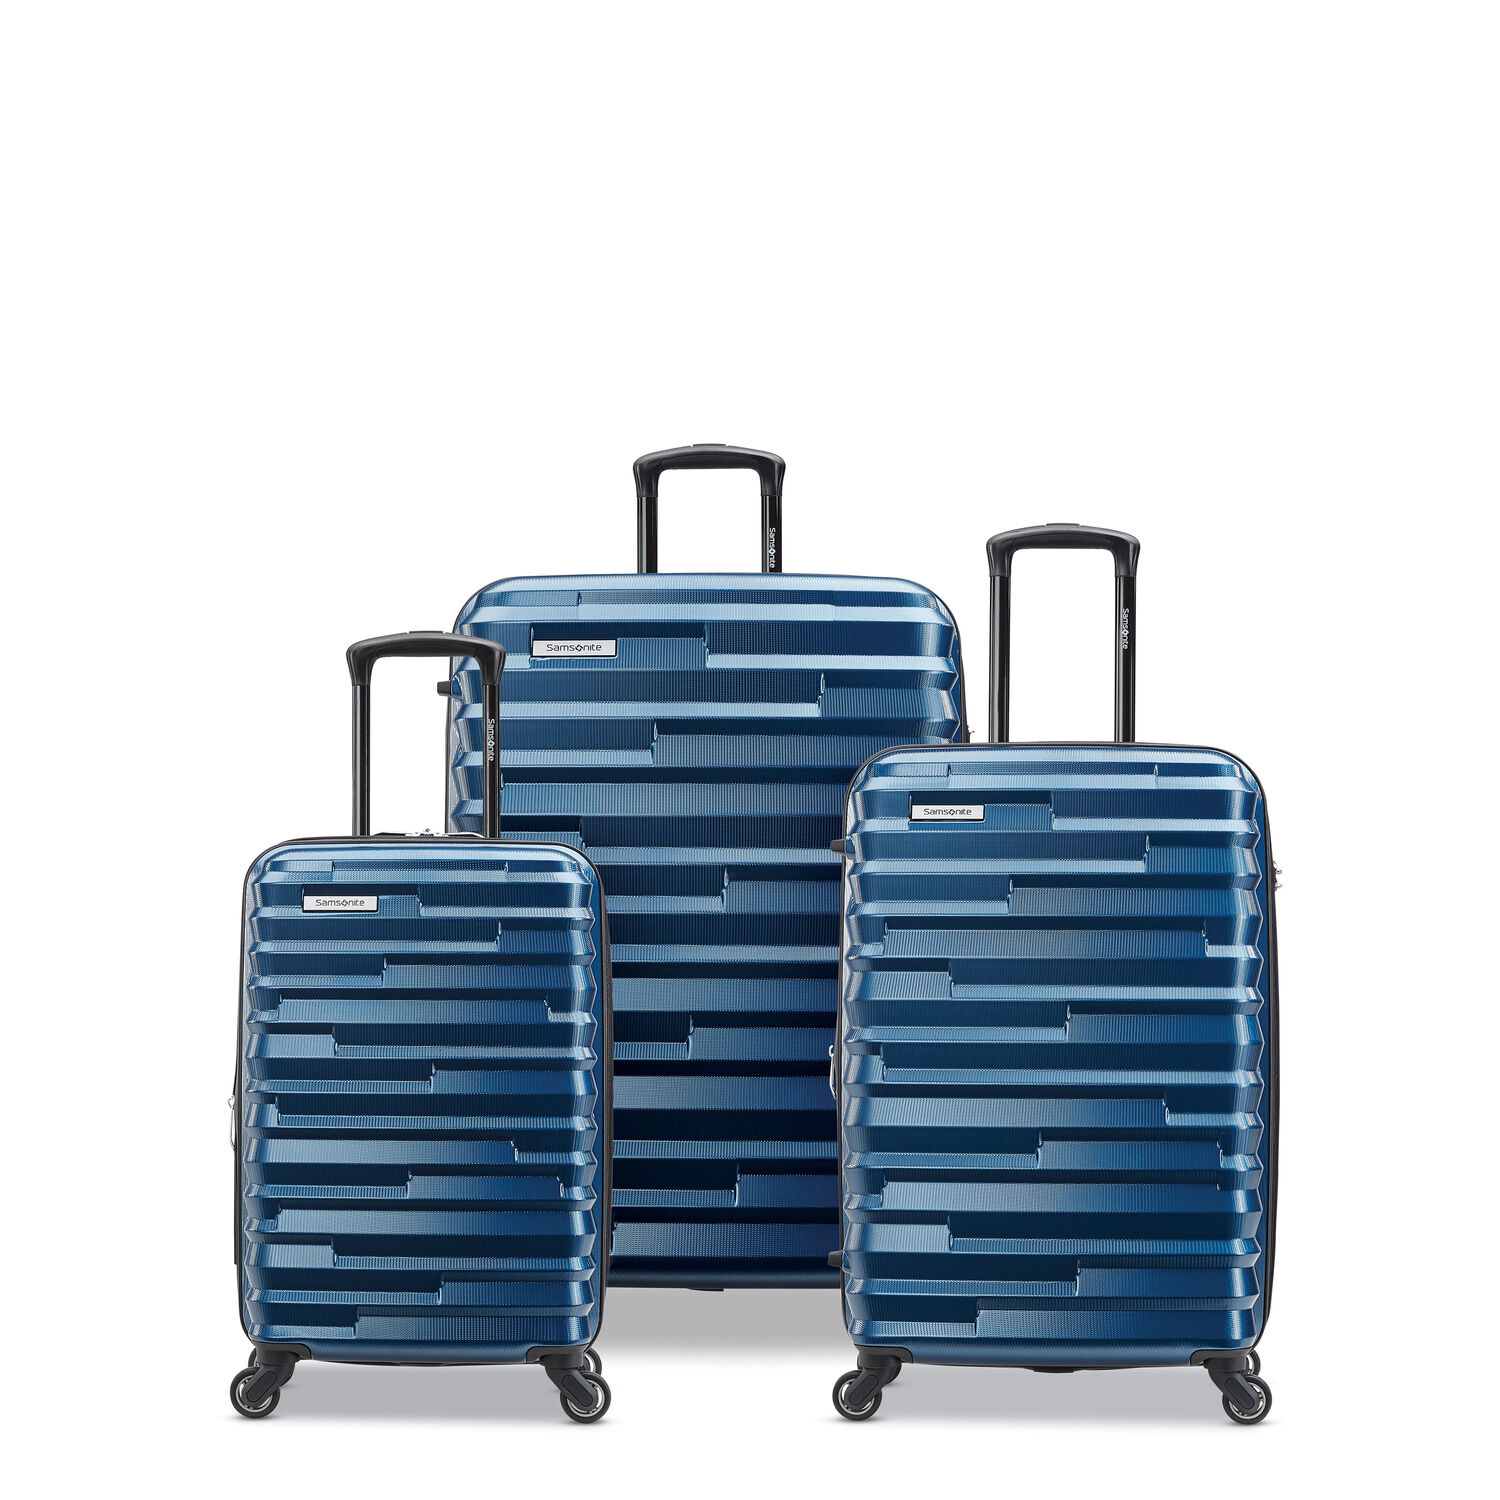 Samsonite Ziplite 4 3 Piece Set (CO/Med/Lrg) in the color Lagoon.